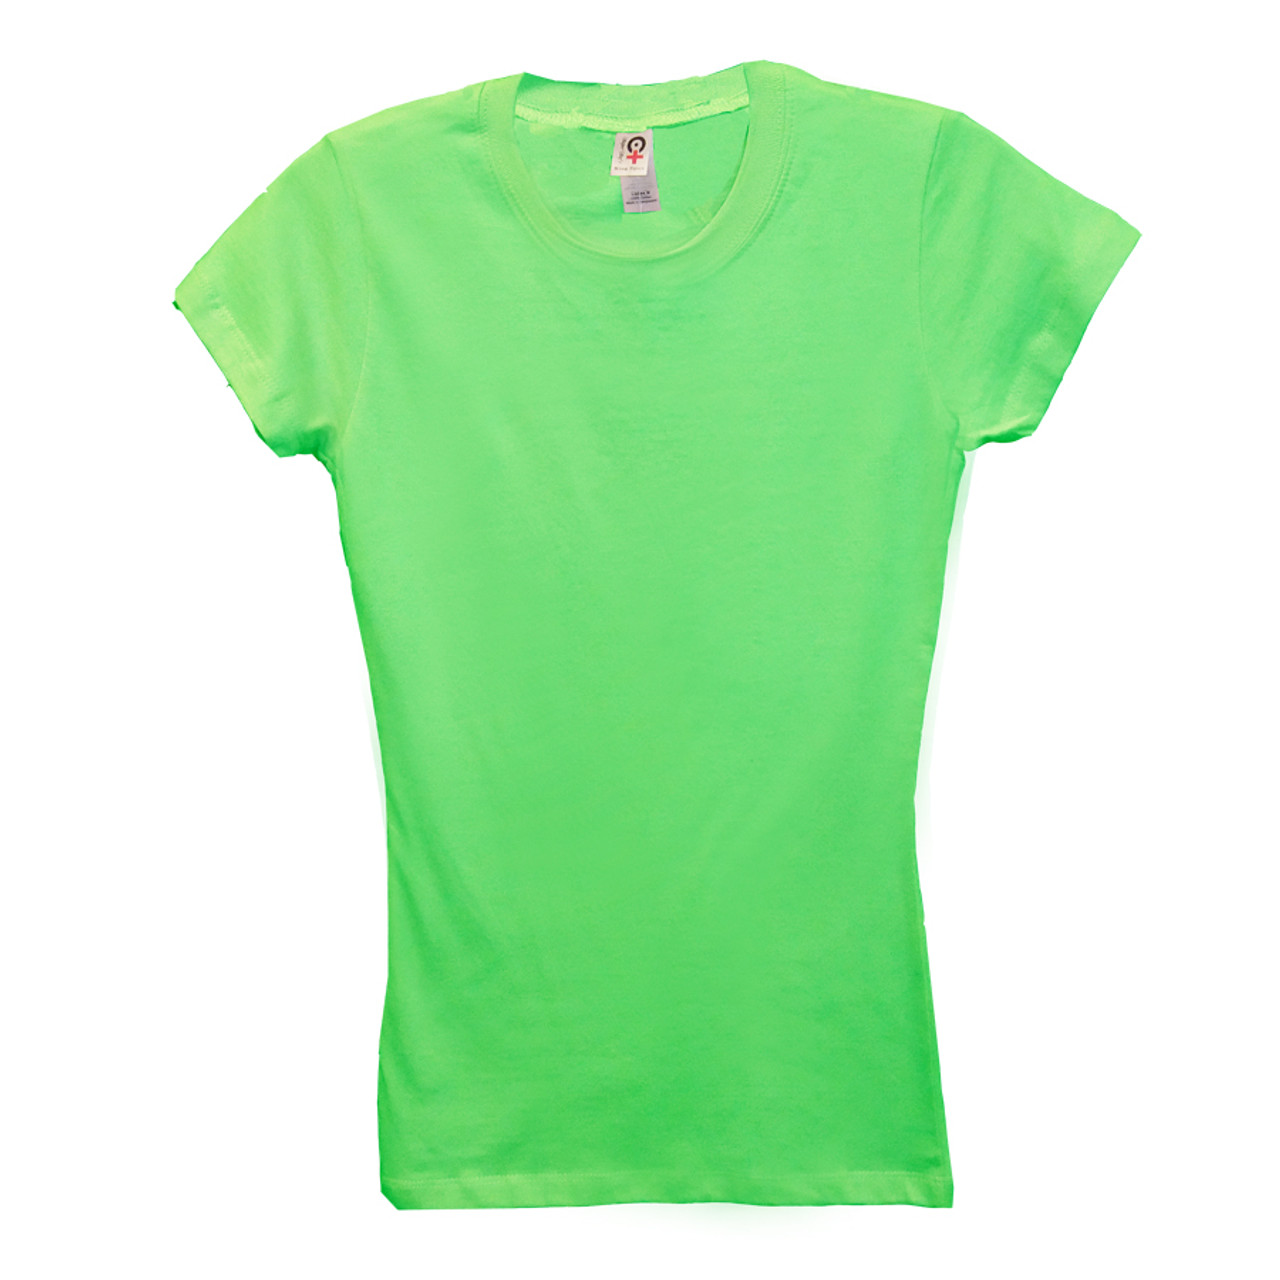 35bd8e6f00 Imported Ladies 100% Cotton Round Neck T-shirts - LCPS